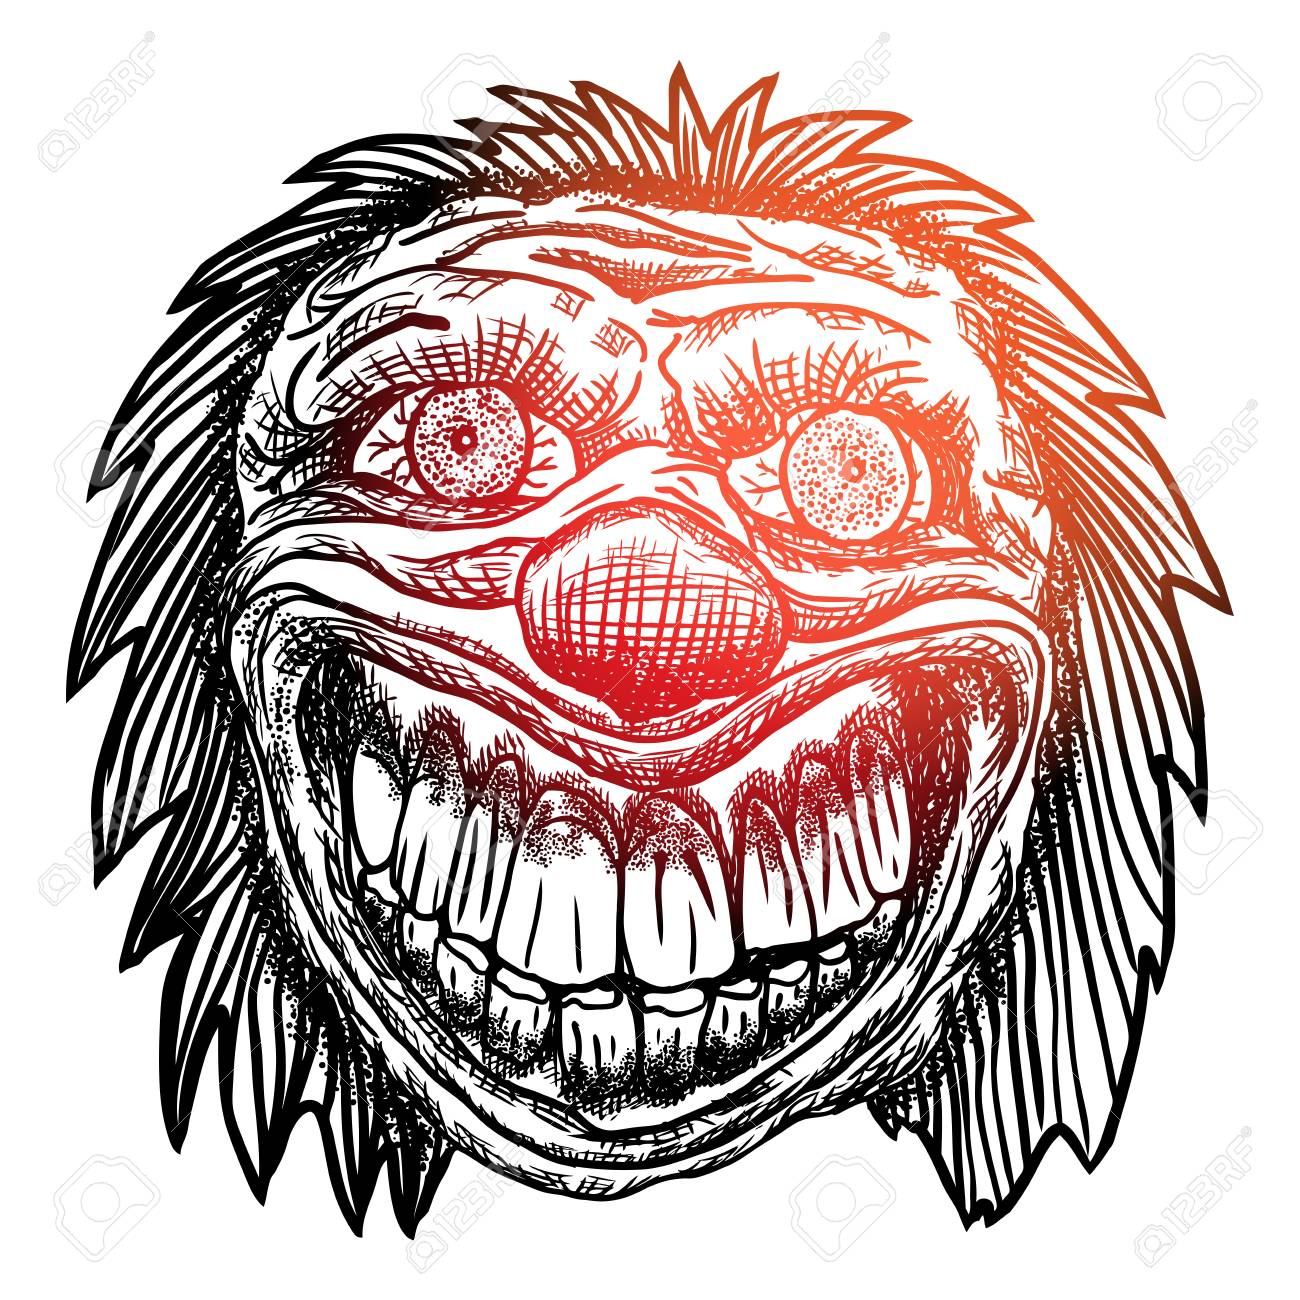 Blackwork Adult Flesh Tattoo Concept Of Devil Clown Head Inspired Royalty Free Cliparts Vectors And Stock Illustration Image 116844077